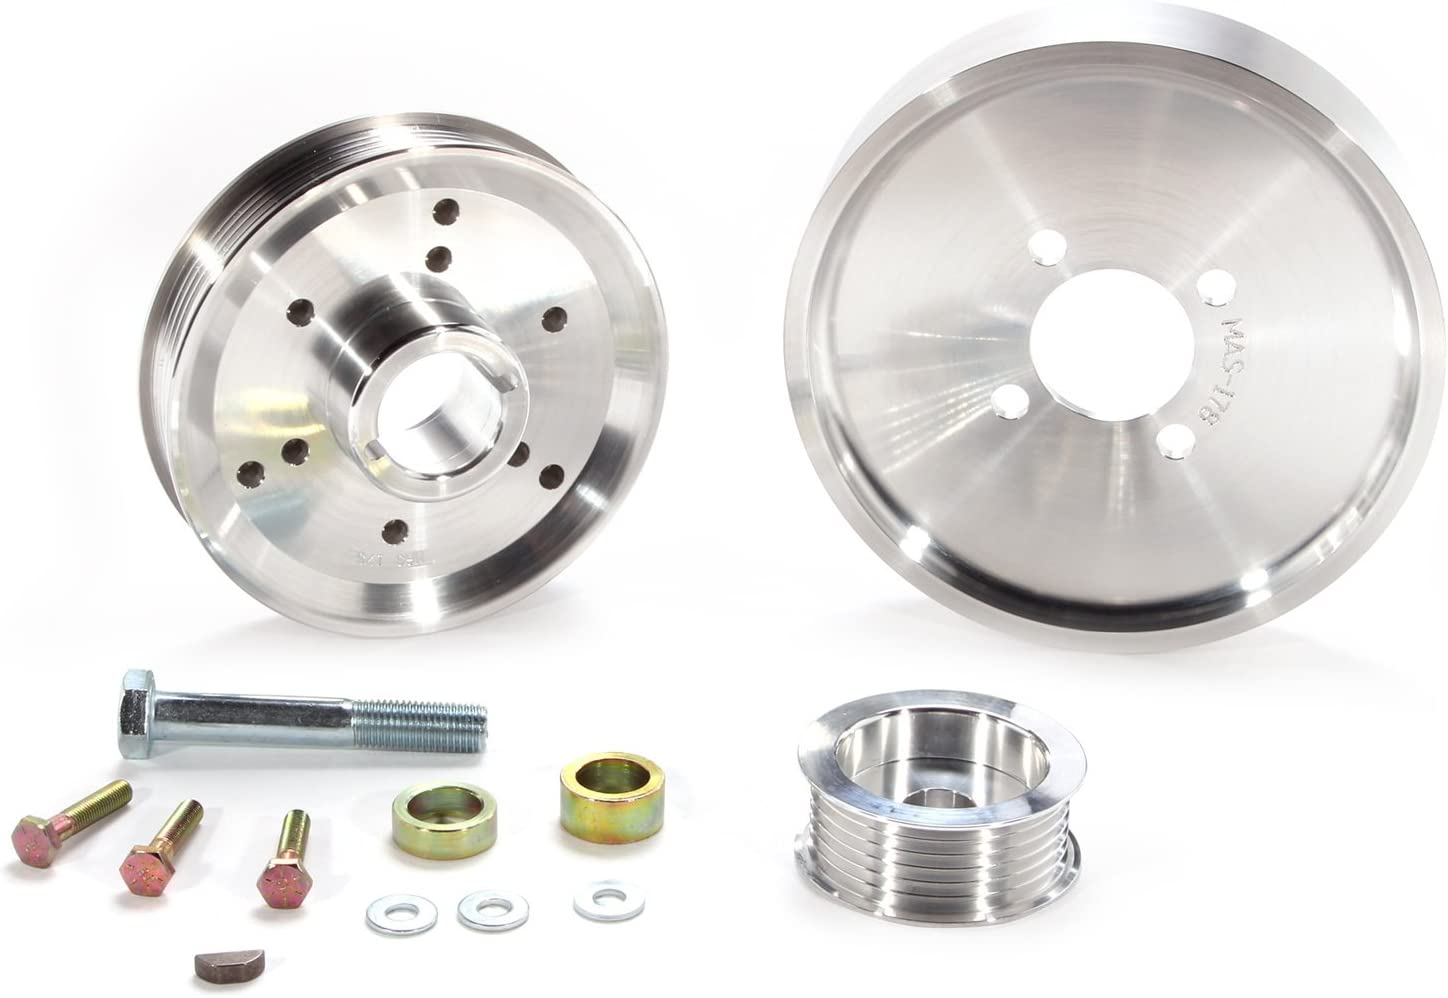 BBK 15550 Aluminum 8-Rib Underdrive Pulley Kit for Ford F-Series//Expedition 4.6L//5.4L 3 Piece